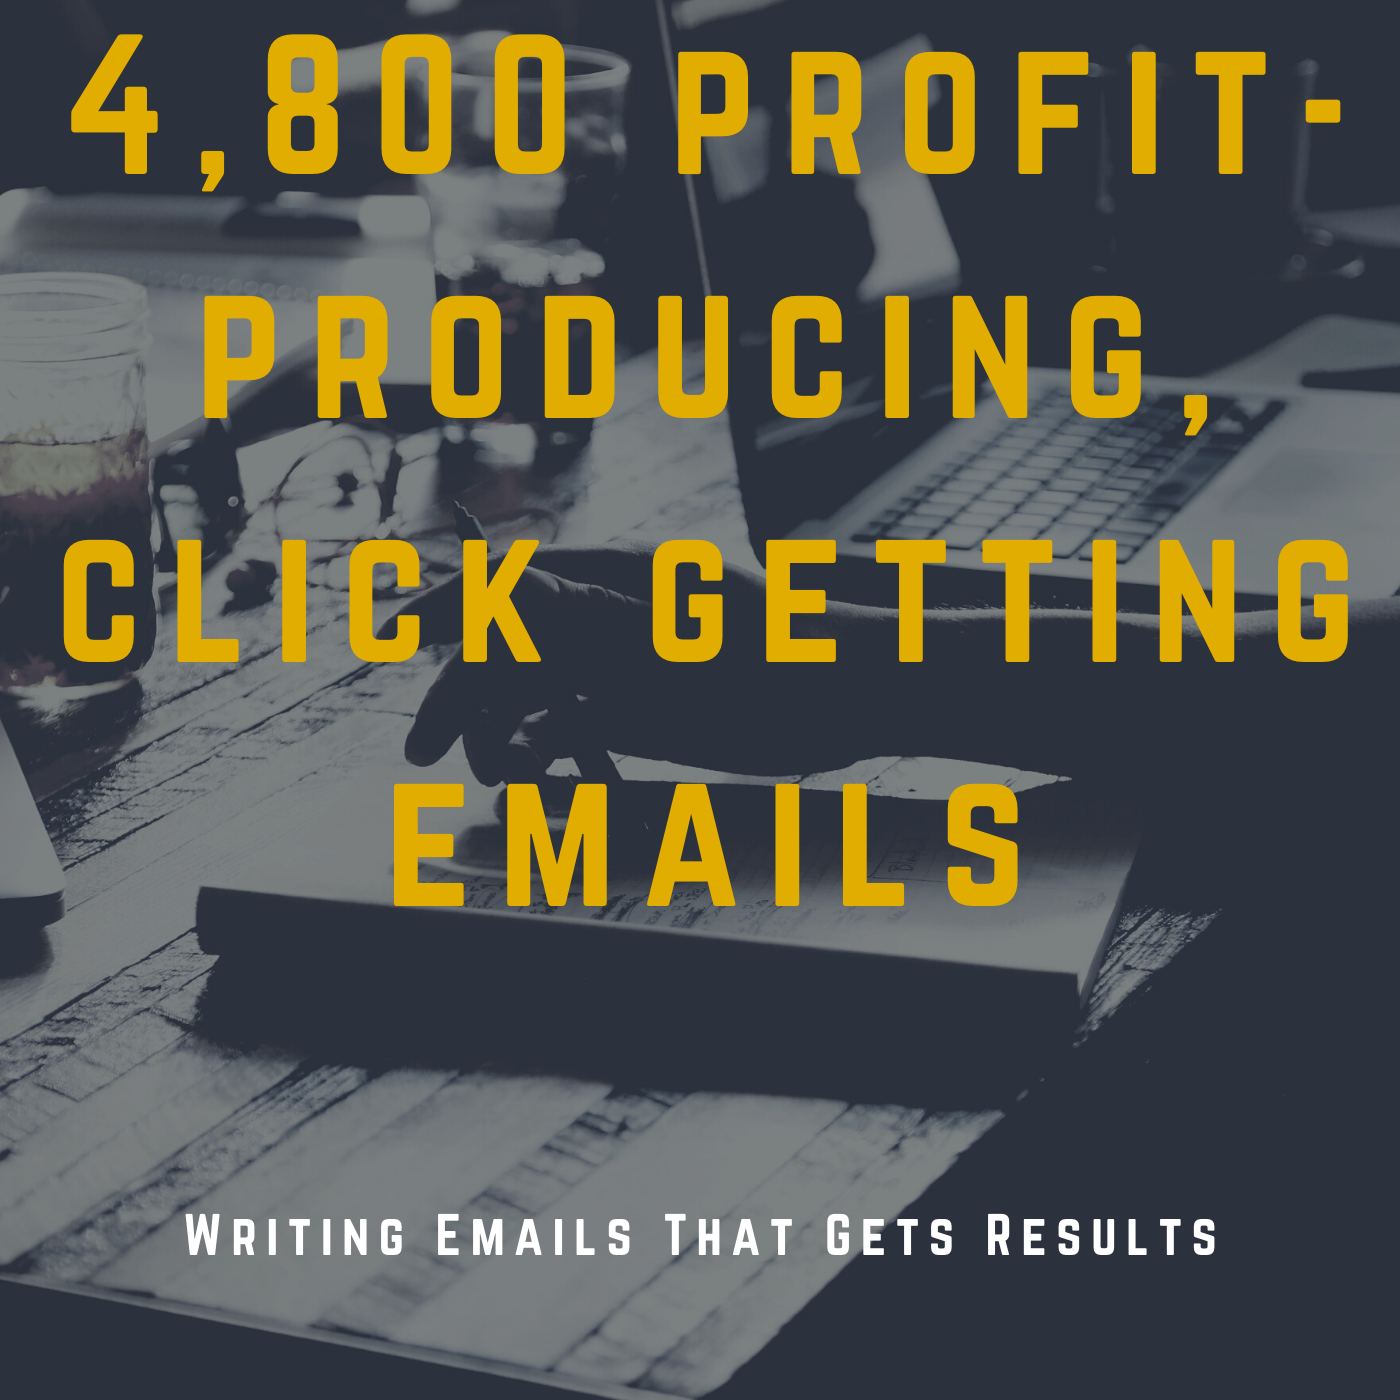 Huge Collection of 4,800 profit-producing,  click getting emails